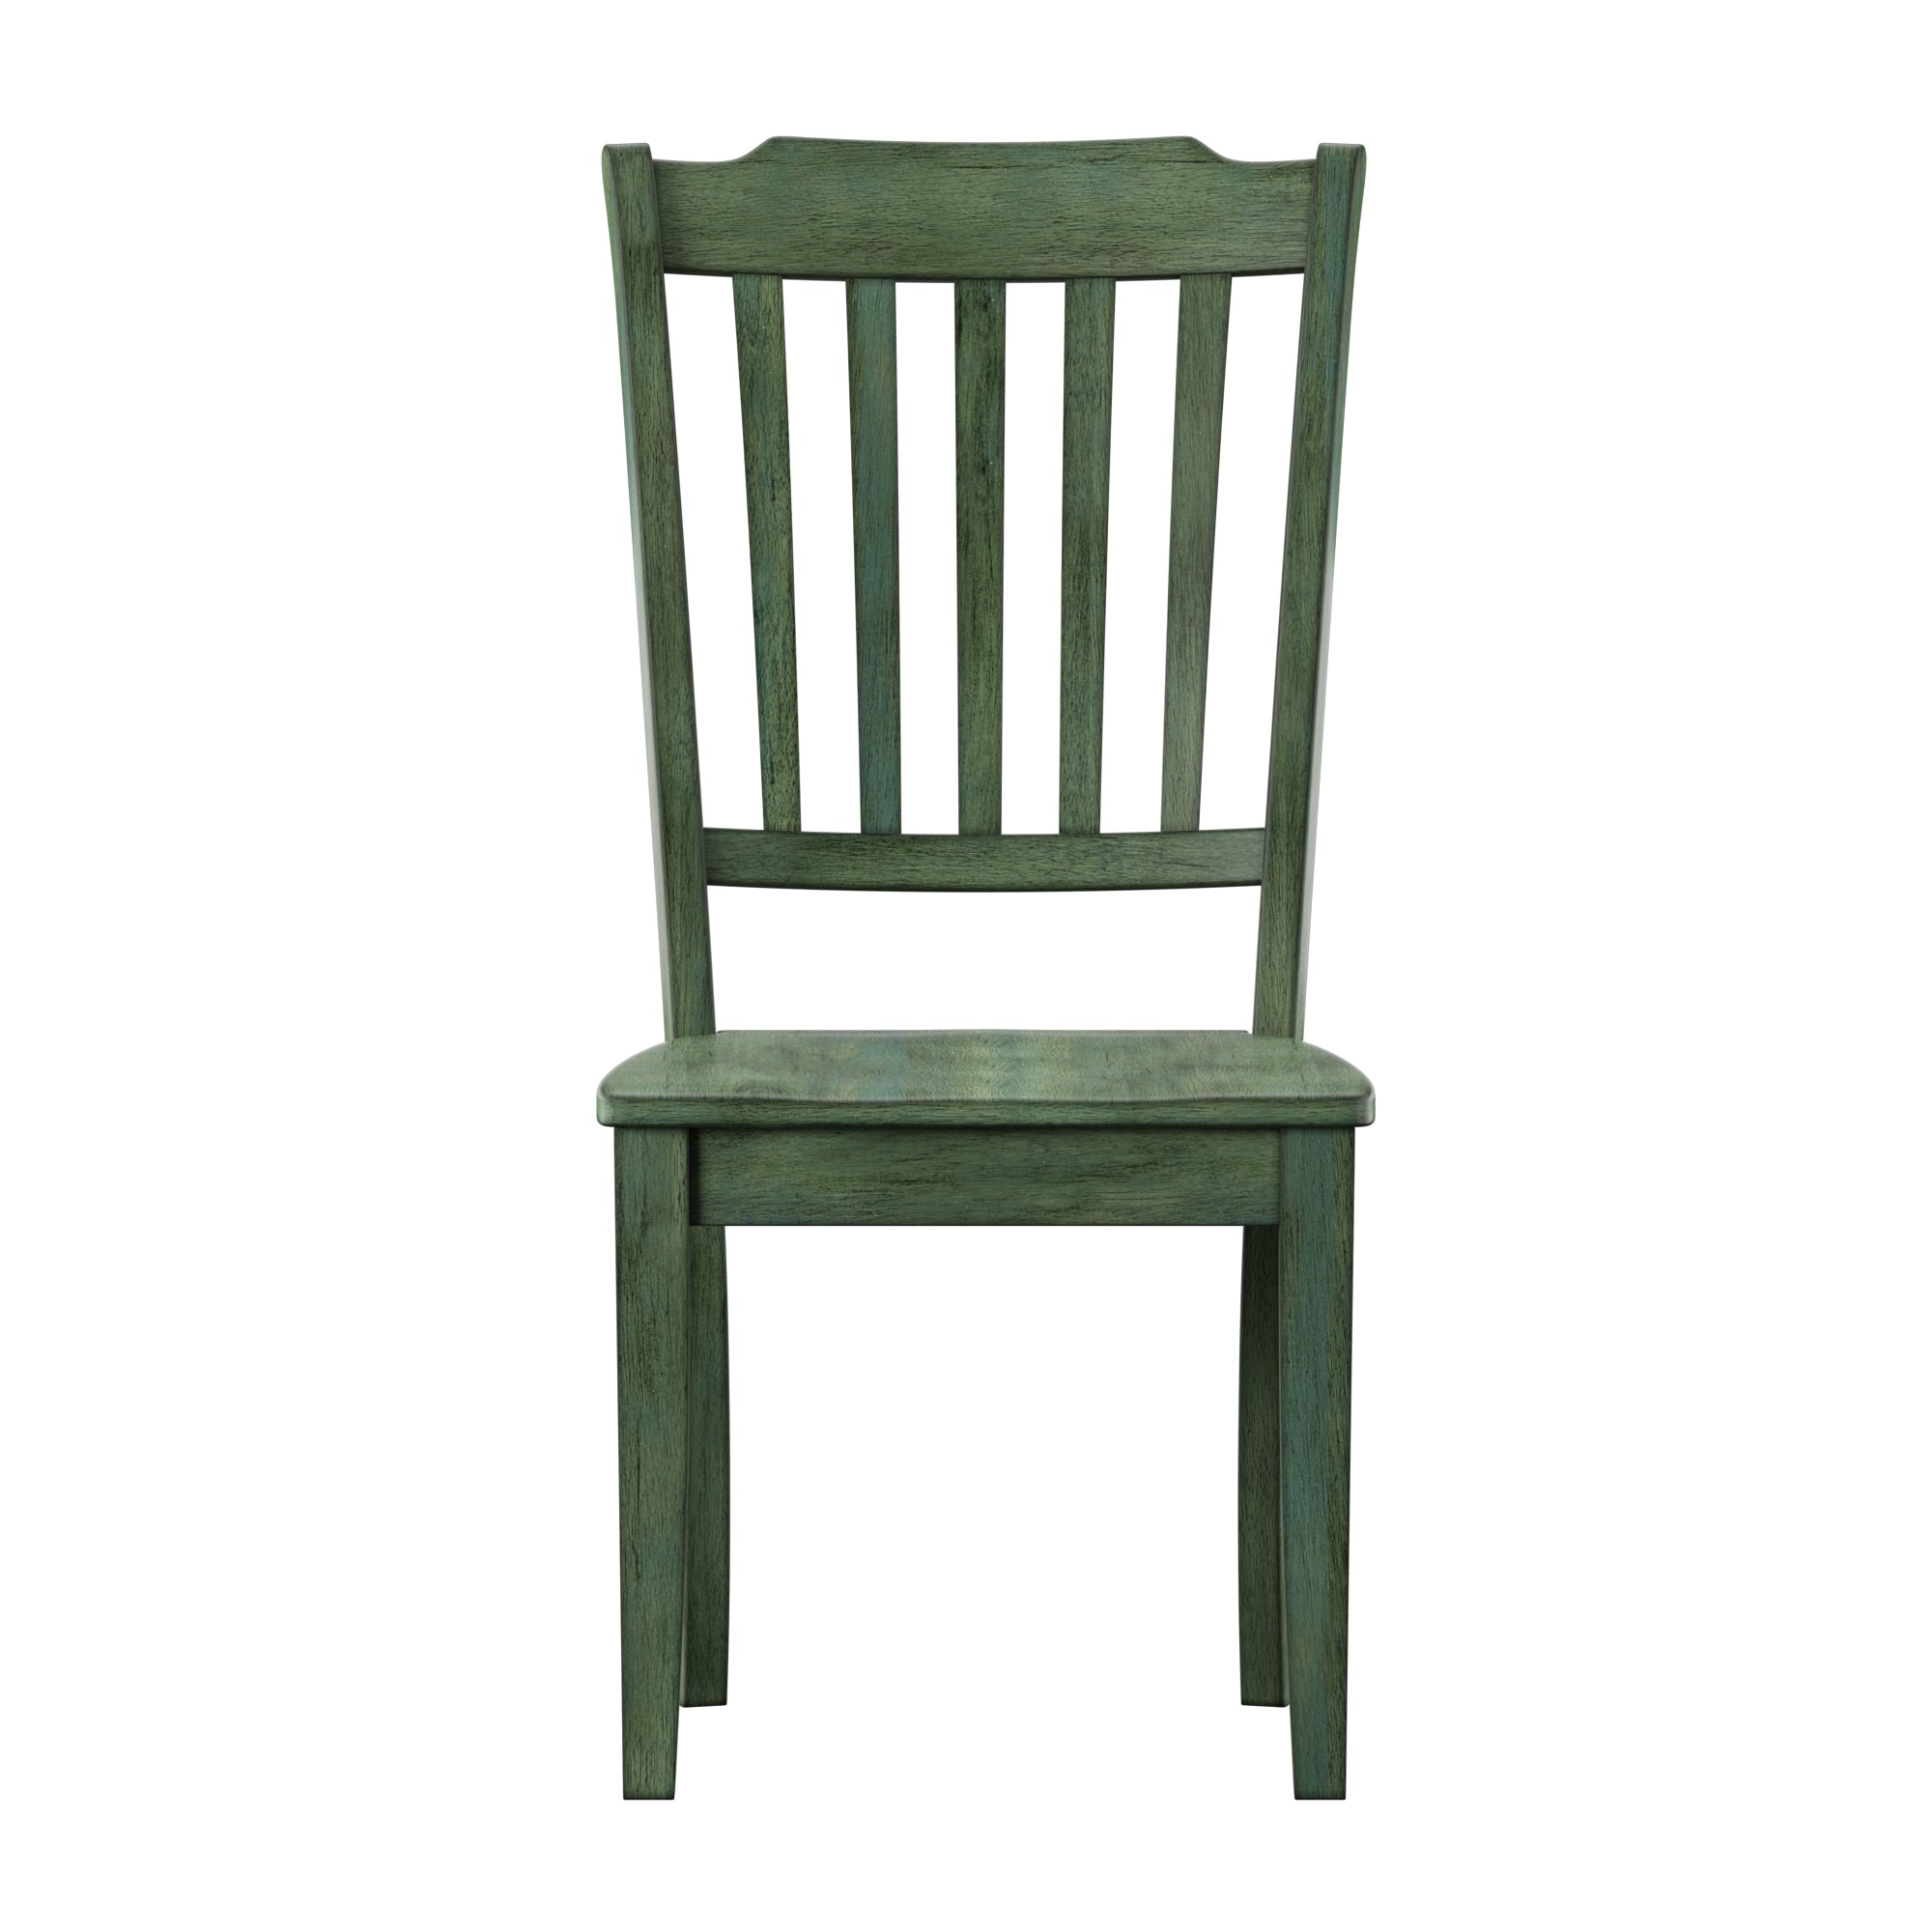 Slat Back Wood Dining Chair (Set of 2) - Antique Sage Green